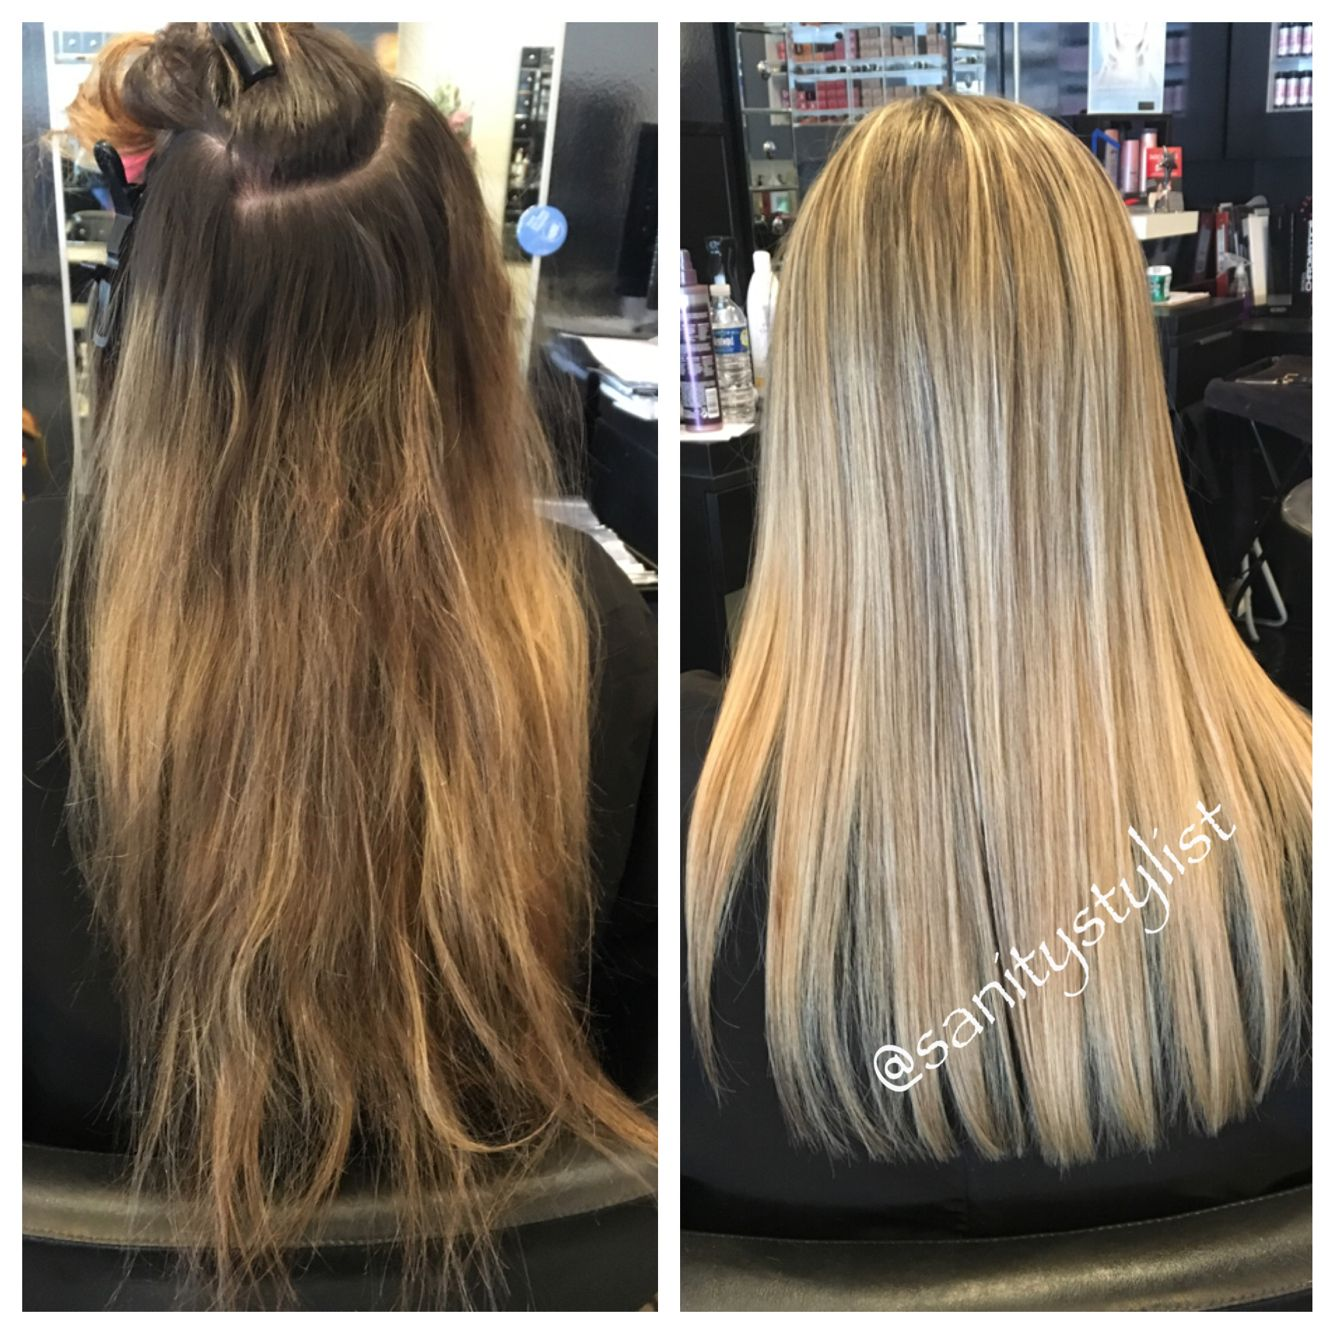 High Contrast Highlight And Lowlights Hair Colors Ideas